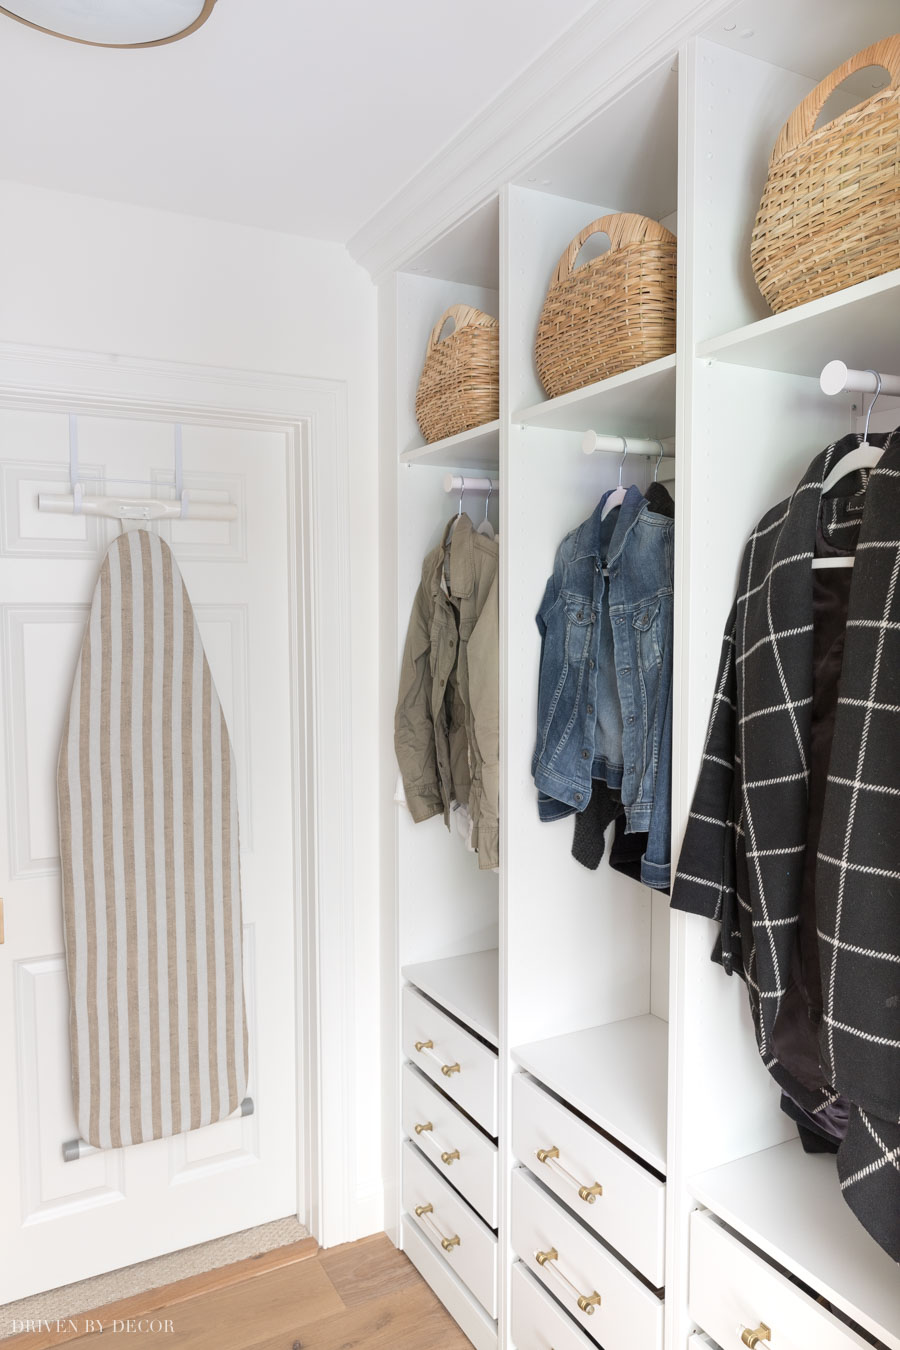 The space saving hangers are the best for small spaces!